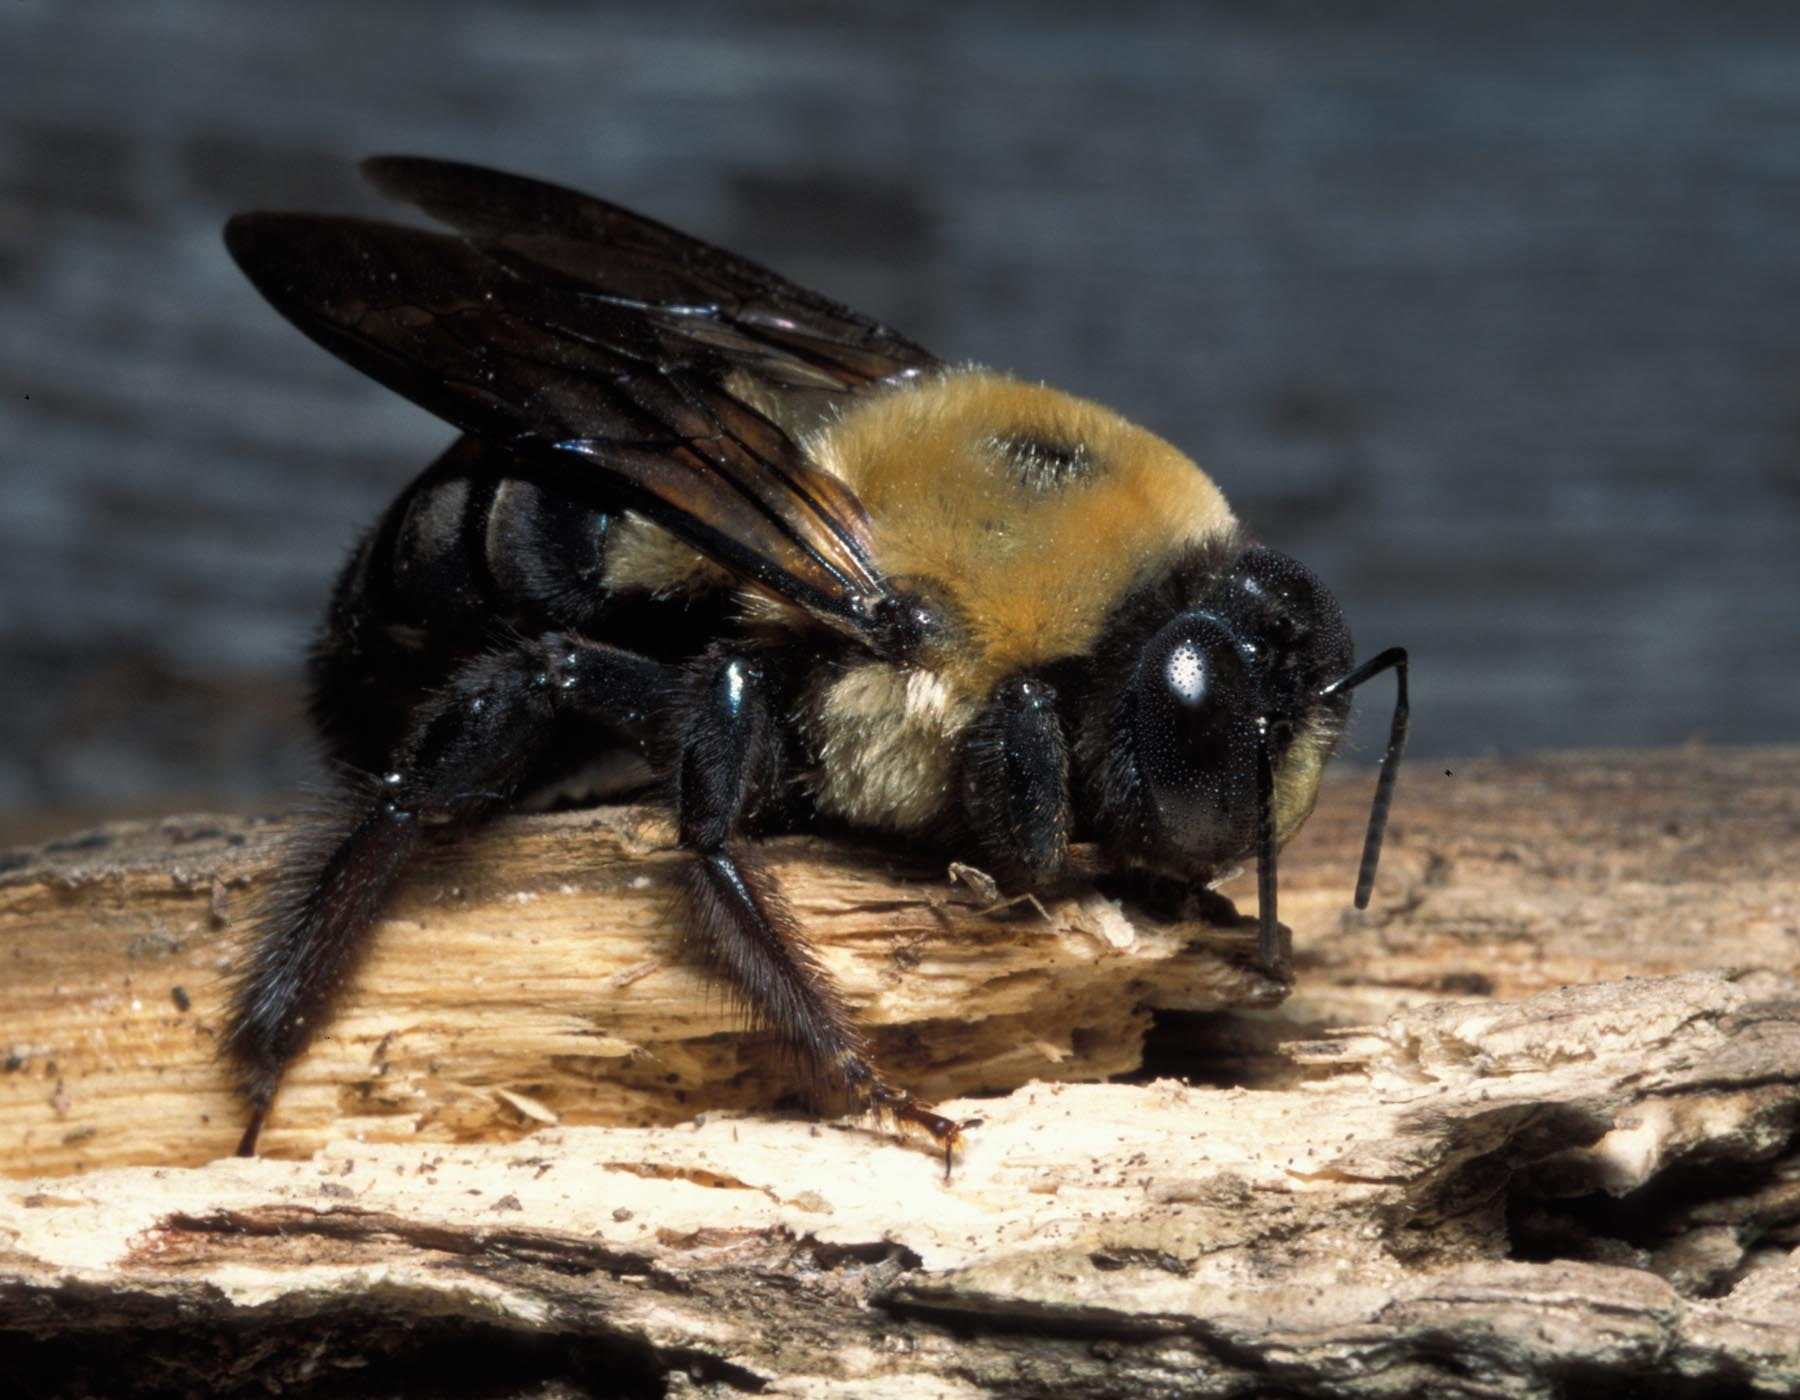 Are Carpenter Bees Harmful - Image By mo gov